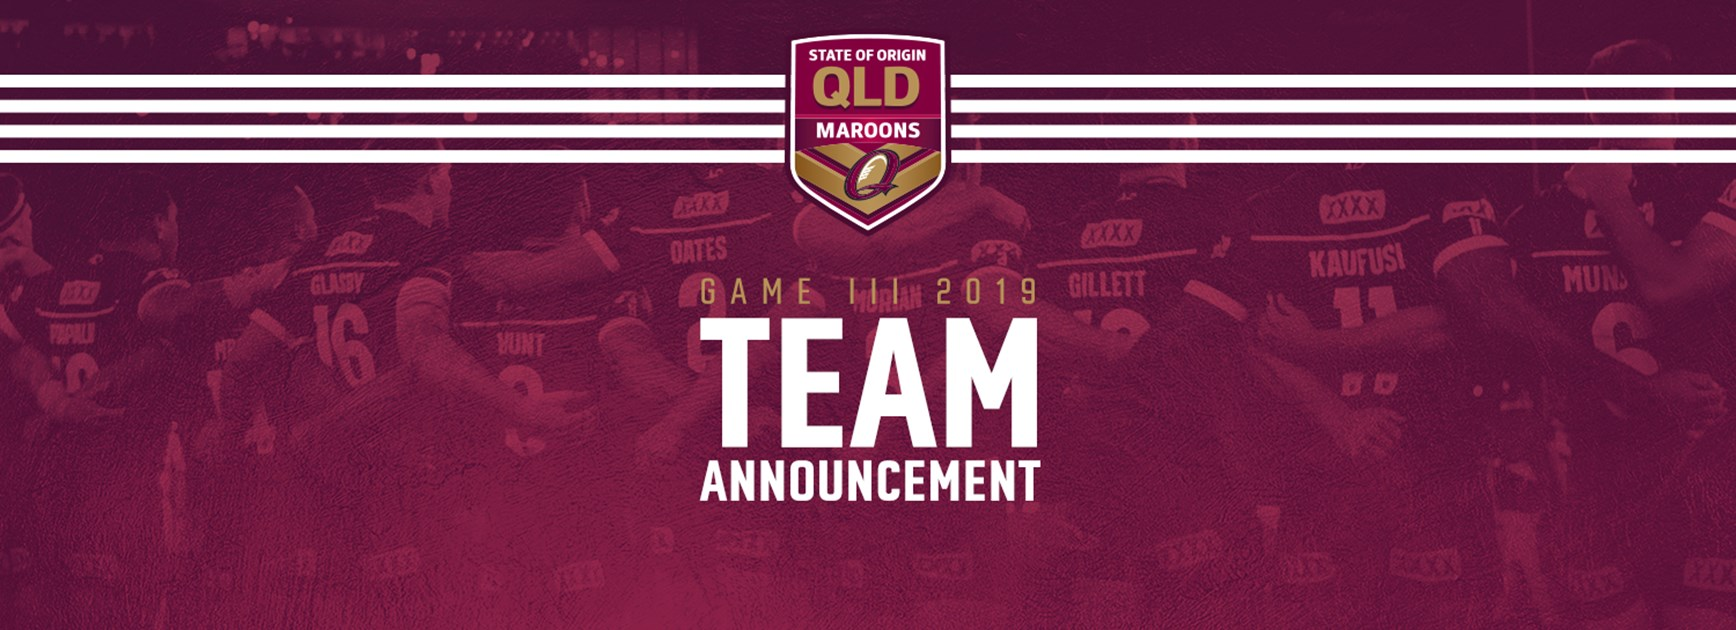 Queensland Maroons Game III team